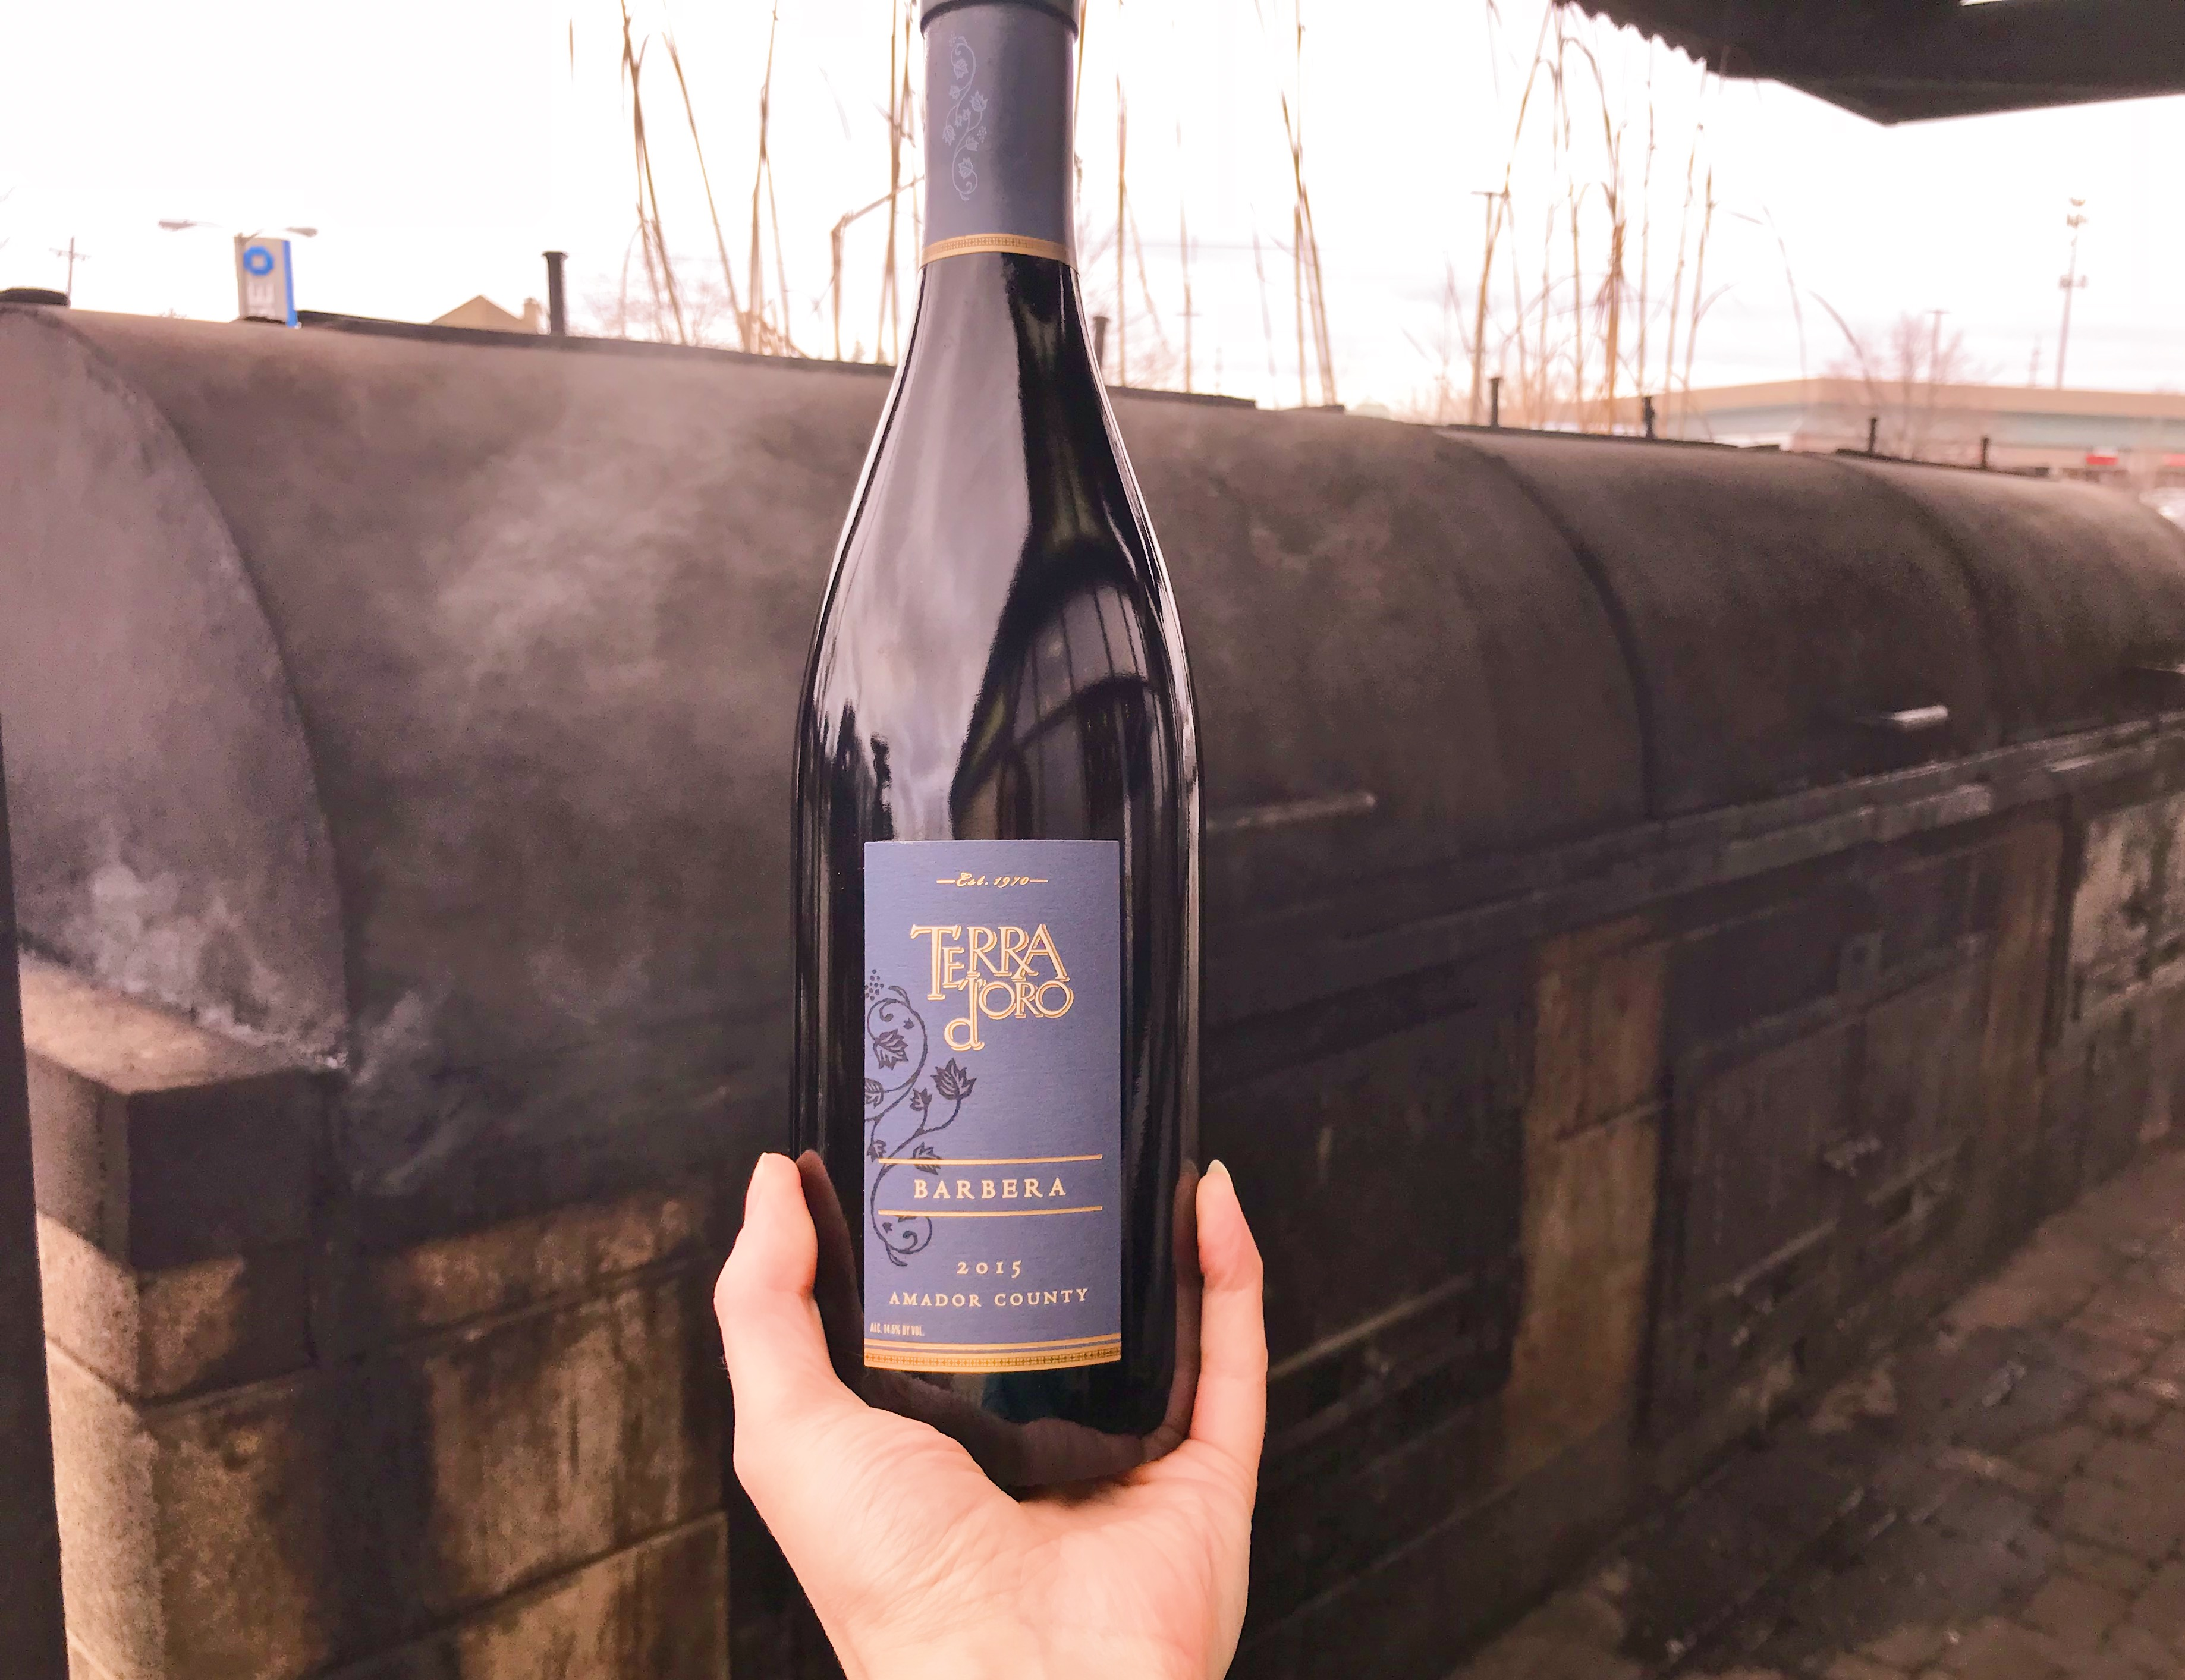 A bottle of Terra d'Oro Barbera held in front of the pit smoker at Zingerman's Roadhouse.